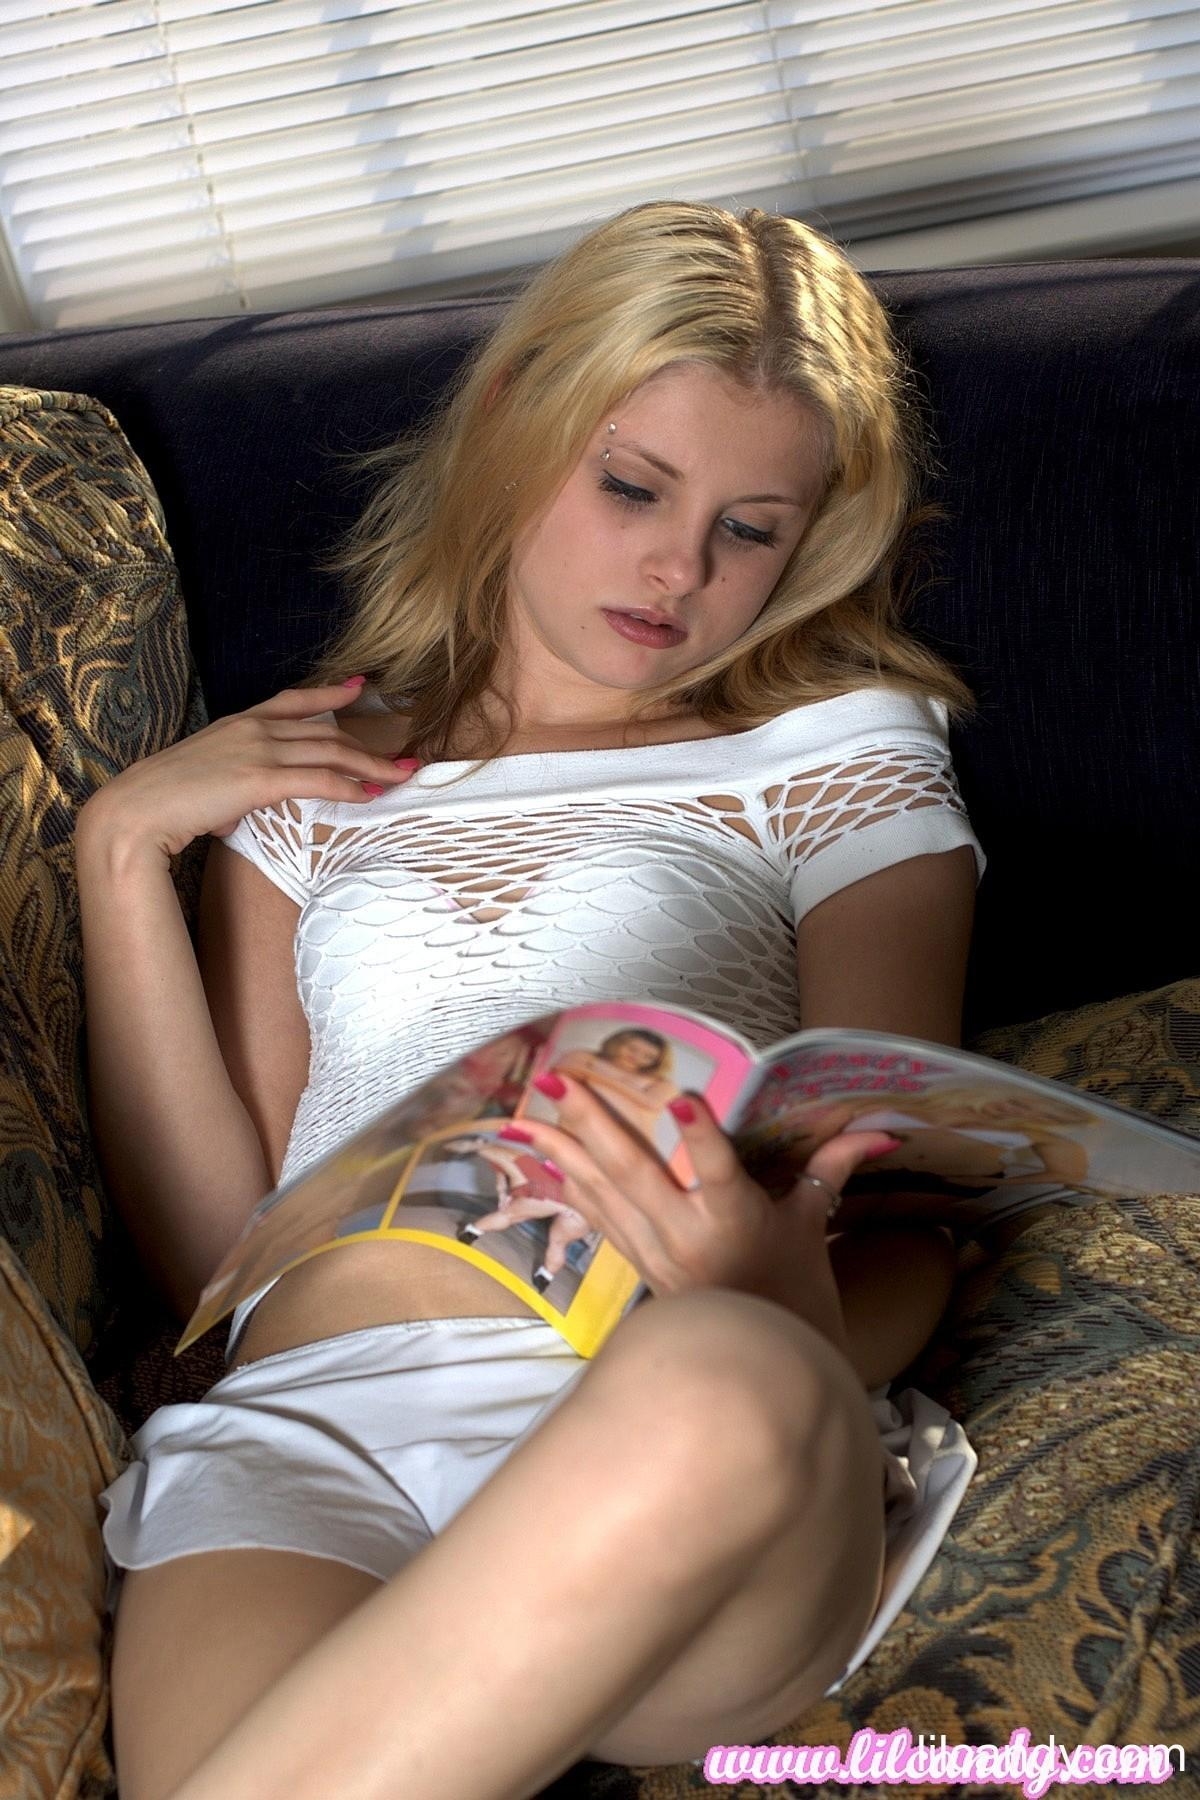 Blonde Teen Lil Candy Masturbates To A Porno Mag  Coed Cherry-6538